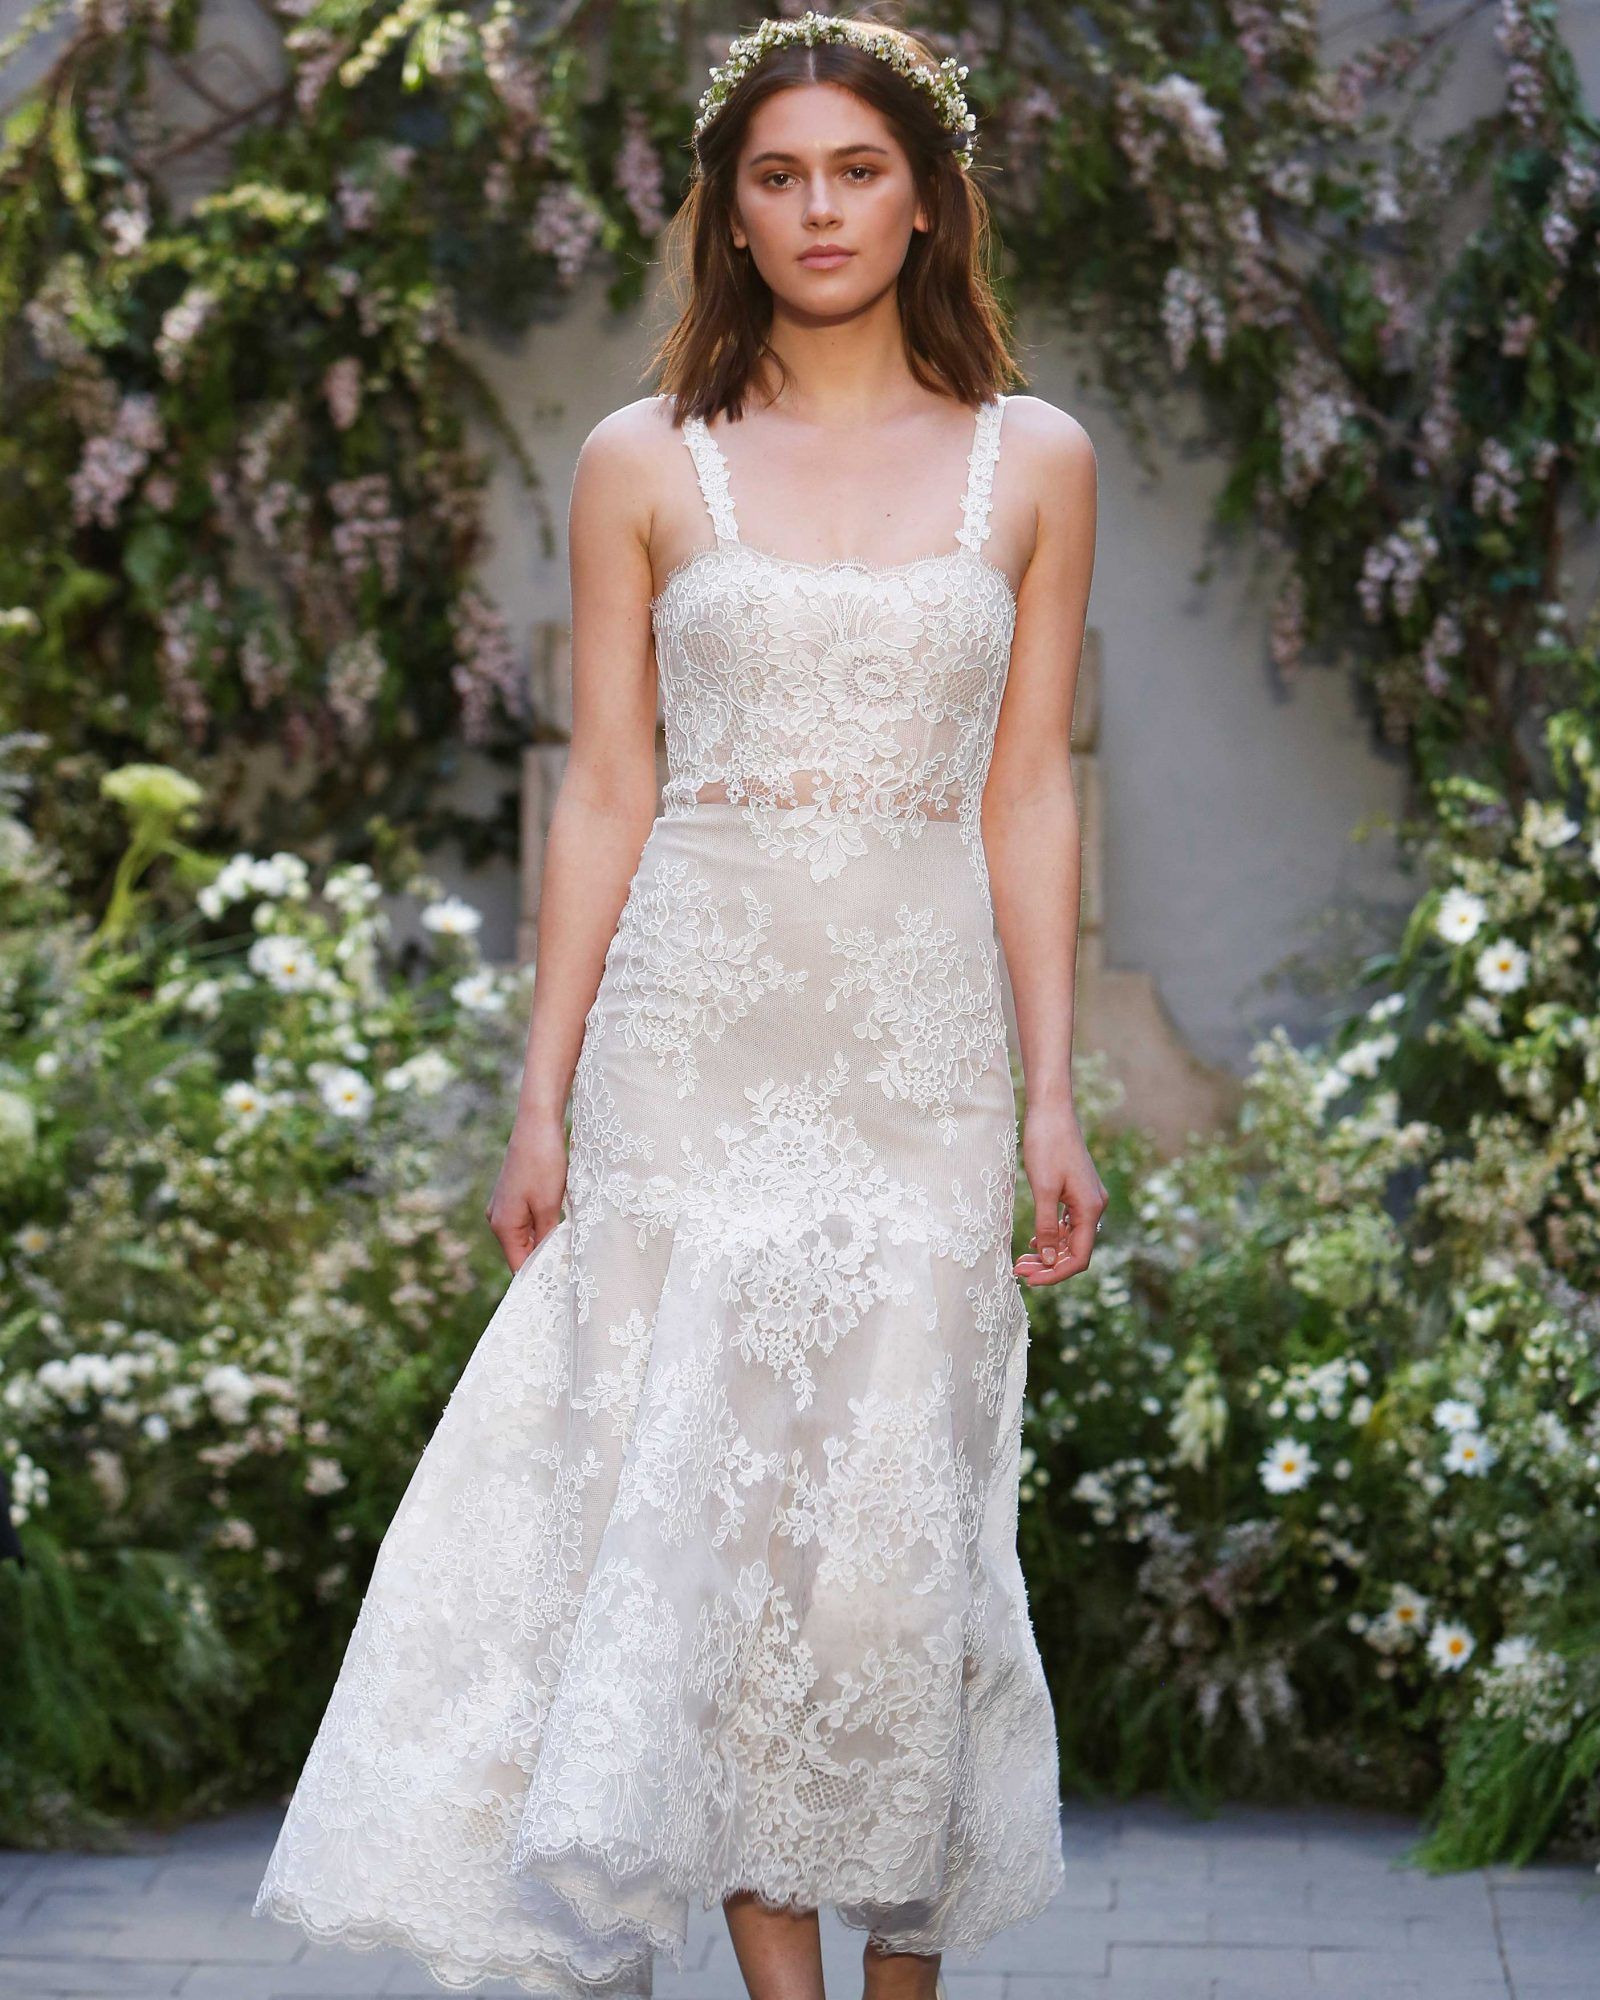 monique-lhuillier-spring2017-d113026-013.jpg